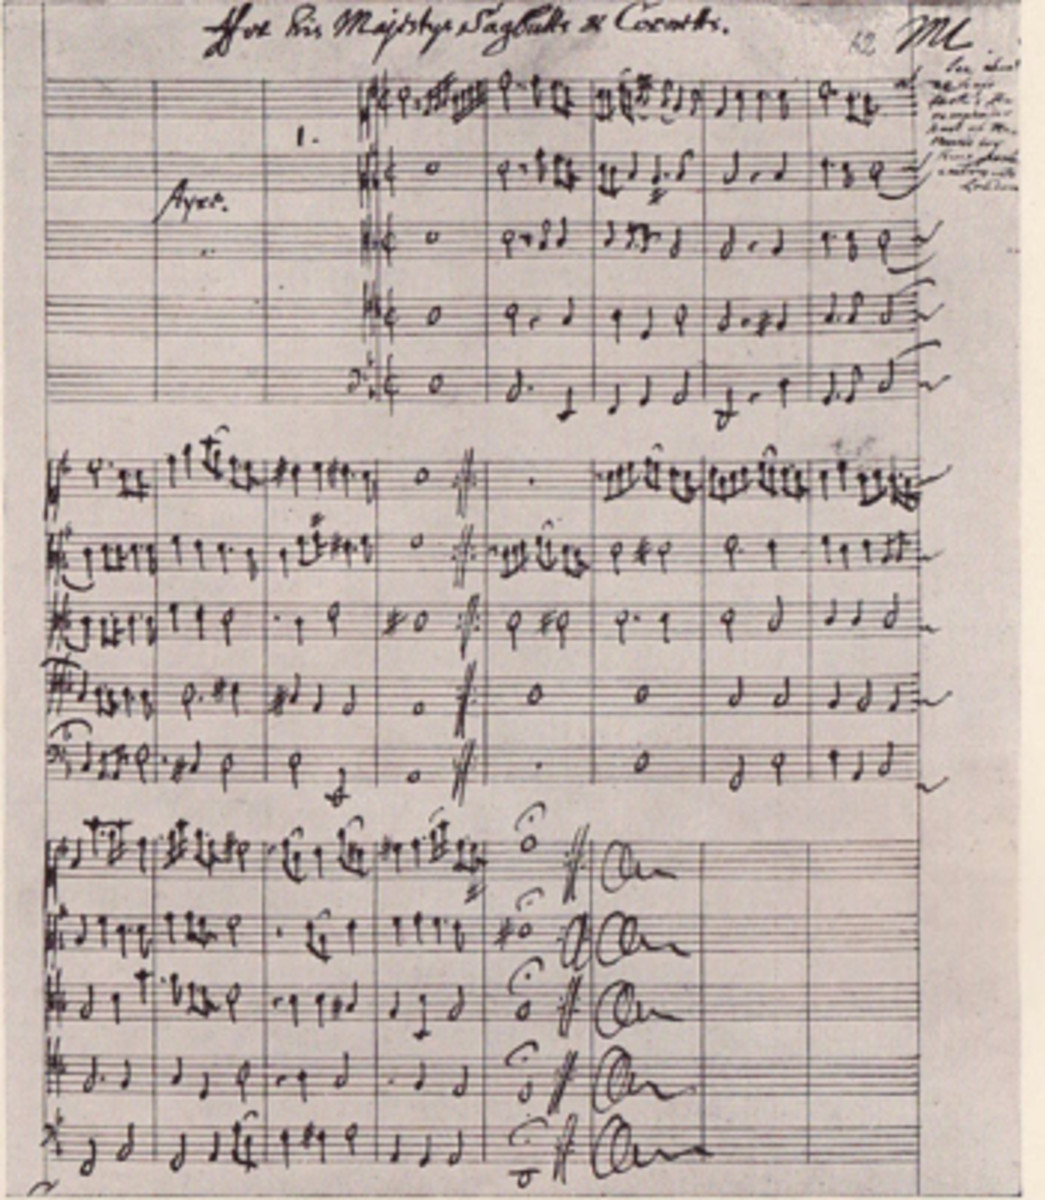 Manuscript from Matthew Locke's Music for his Majestys Sagbutts and Cornetts (1661), probably written for the coronation of Charles II.